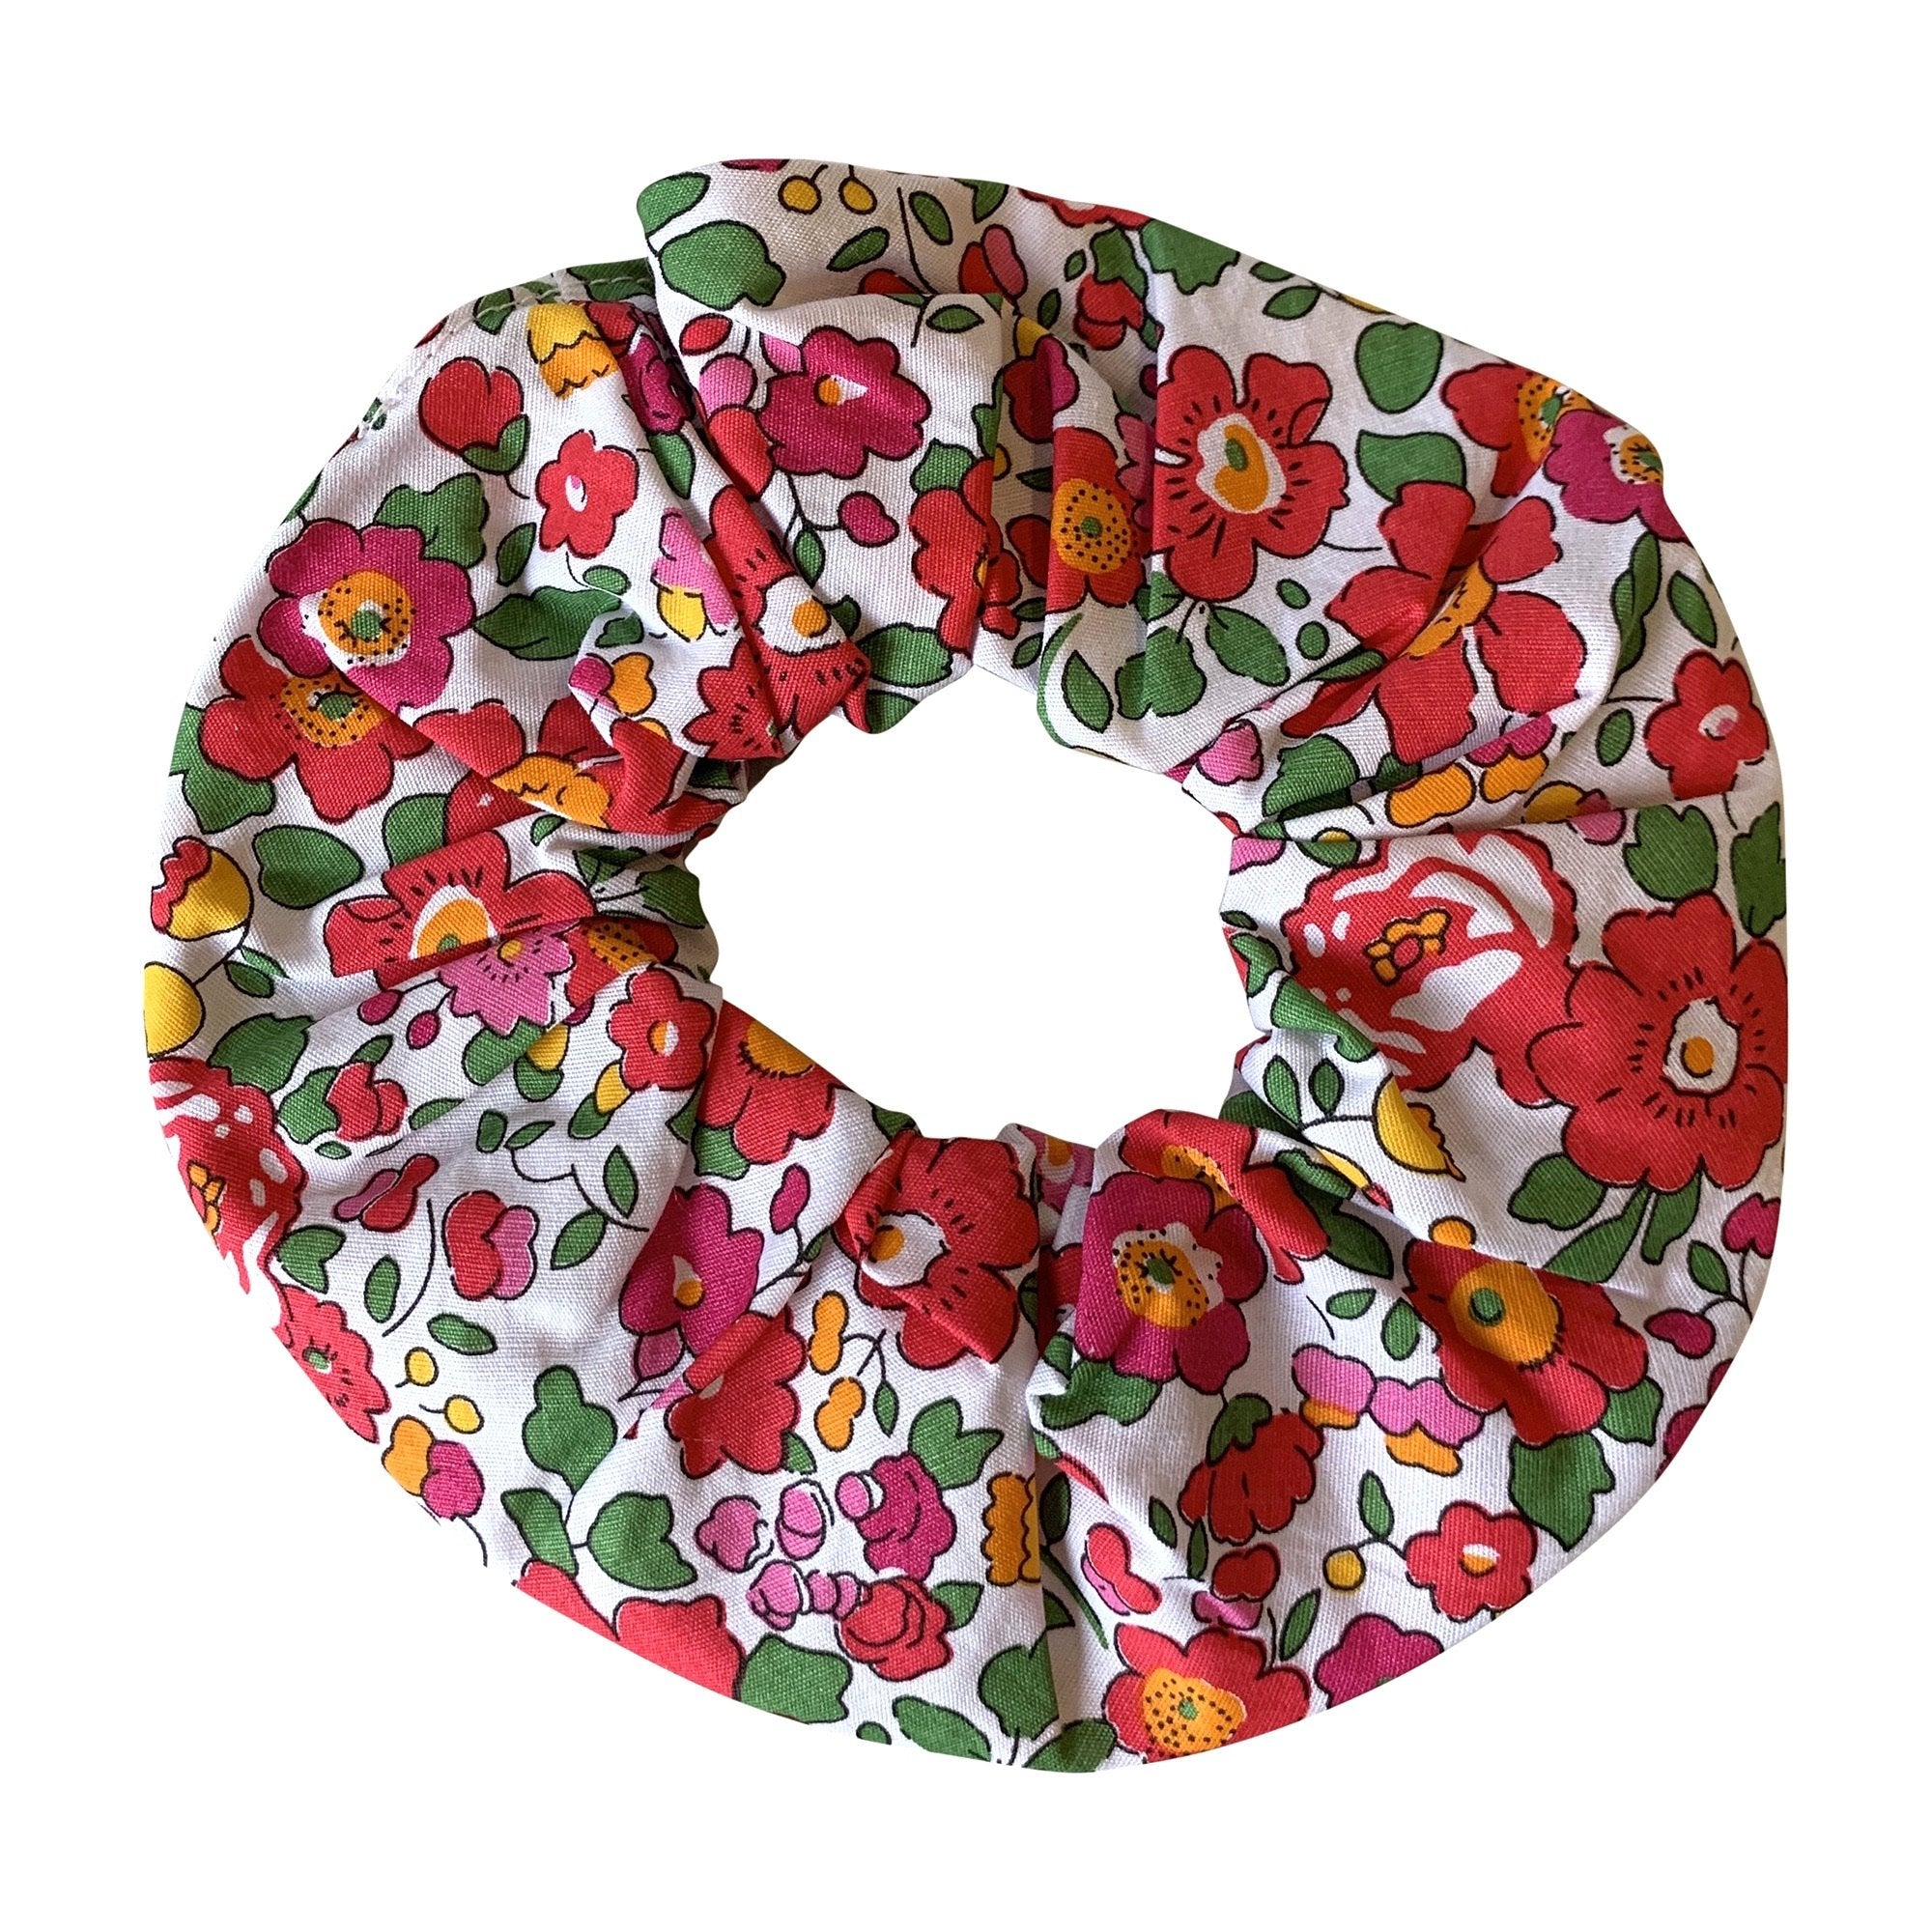 HAIR SCRUNCHIE IN RED LIBERTY PRINT